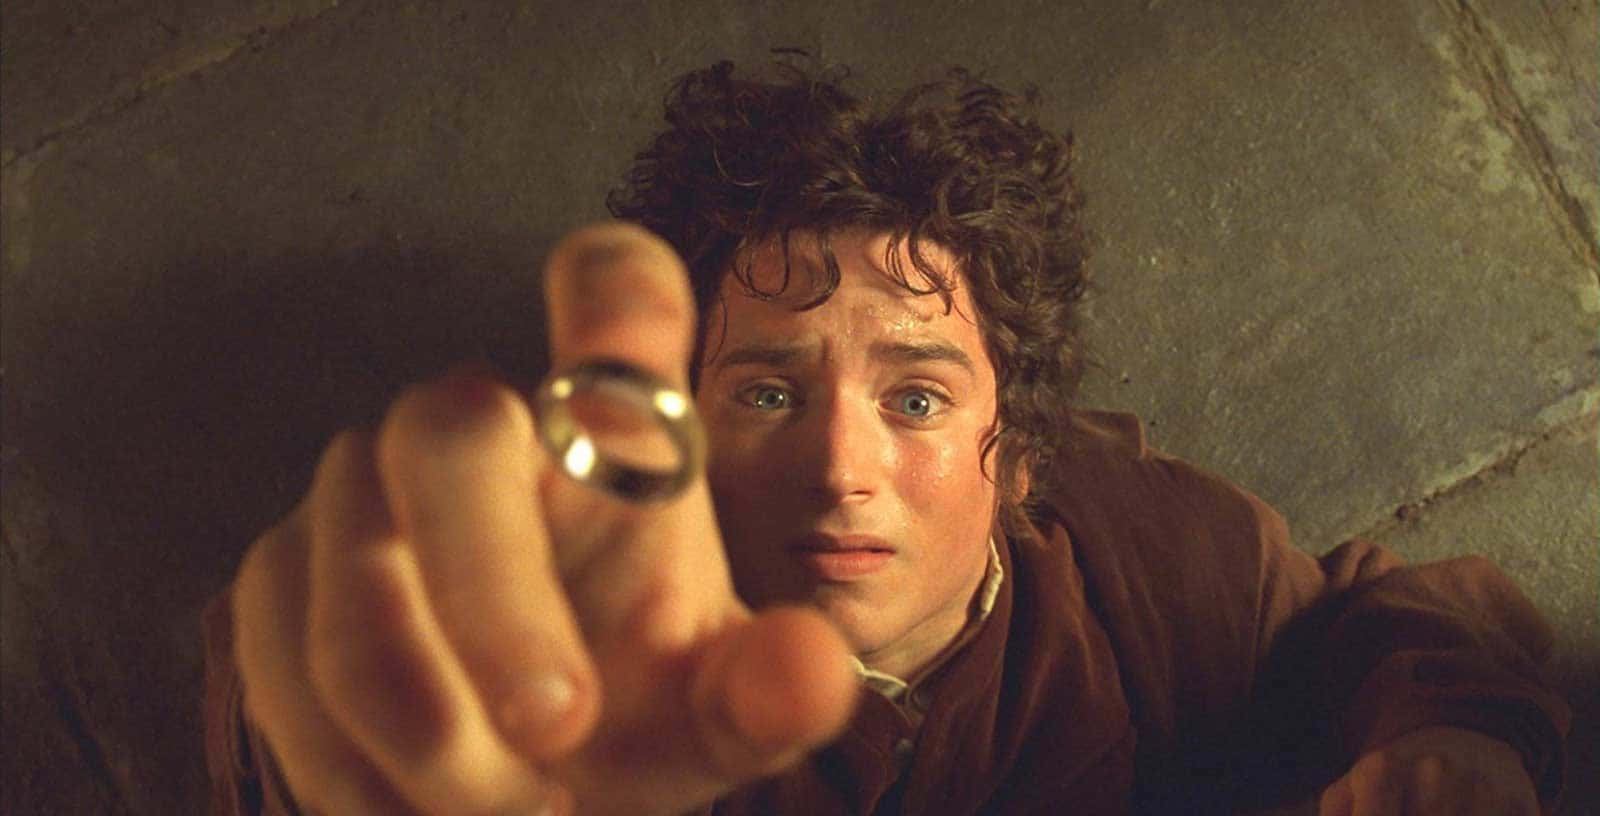 High Angle Shot - Camera Angles - Frodo at a high angle